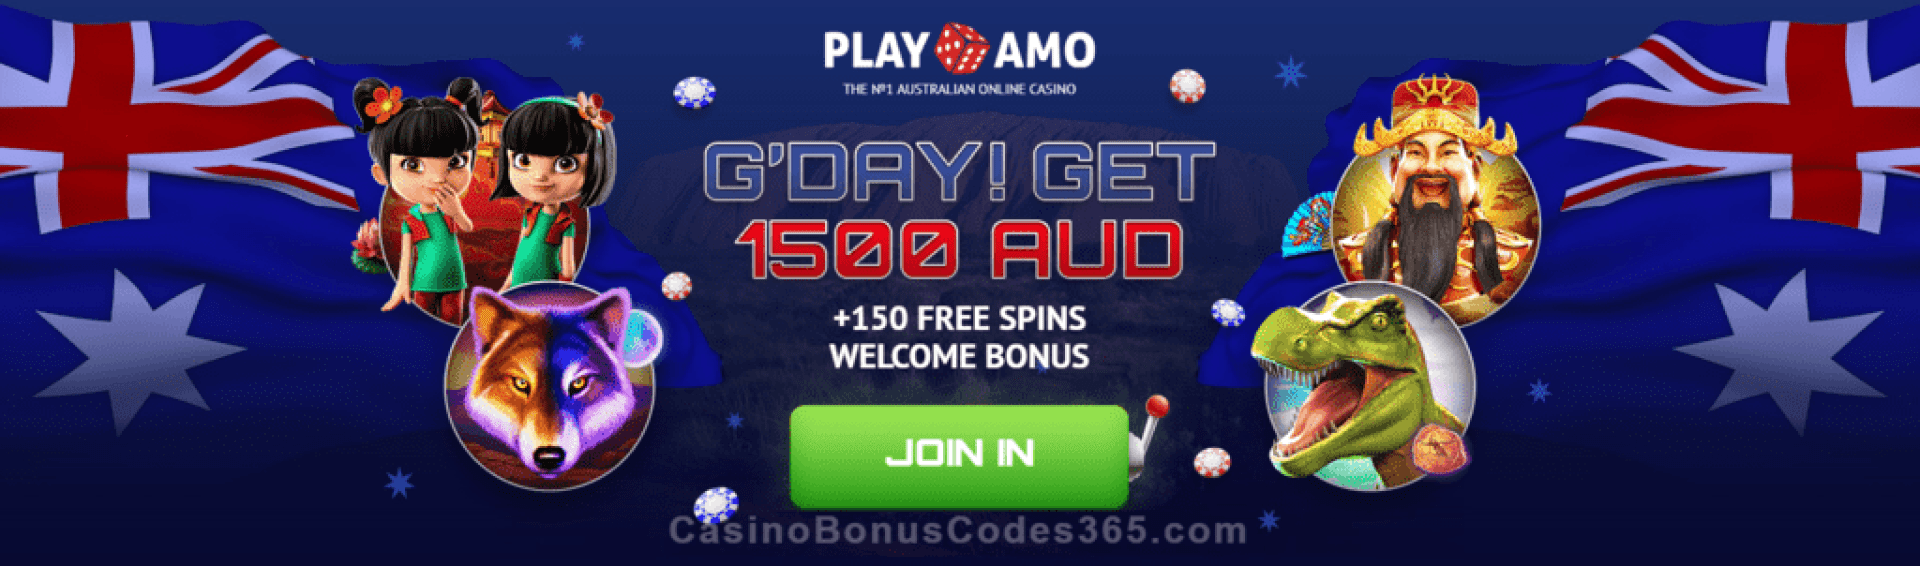 PlayAmo Casino A$1500 plus 150 FREE Spins Welcome Package